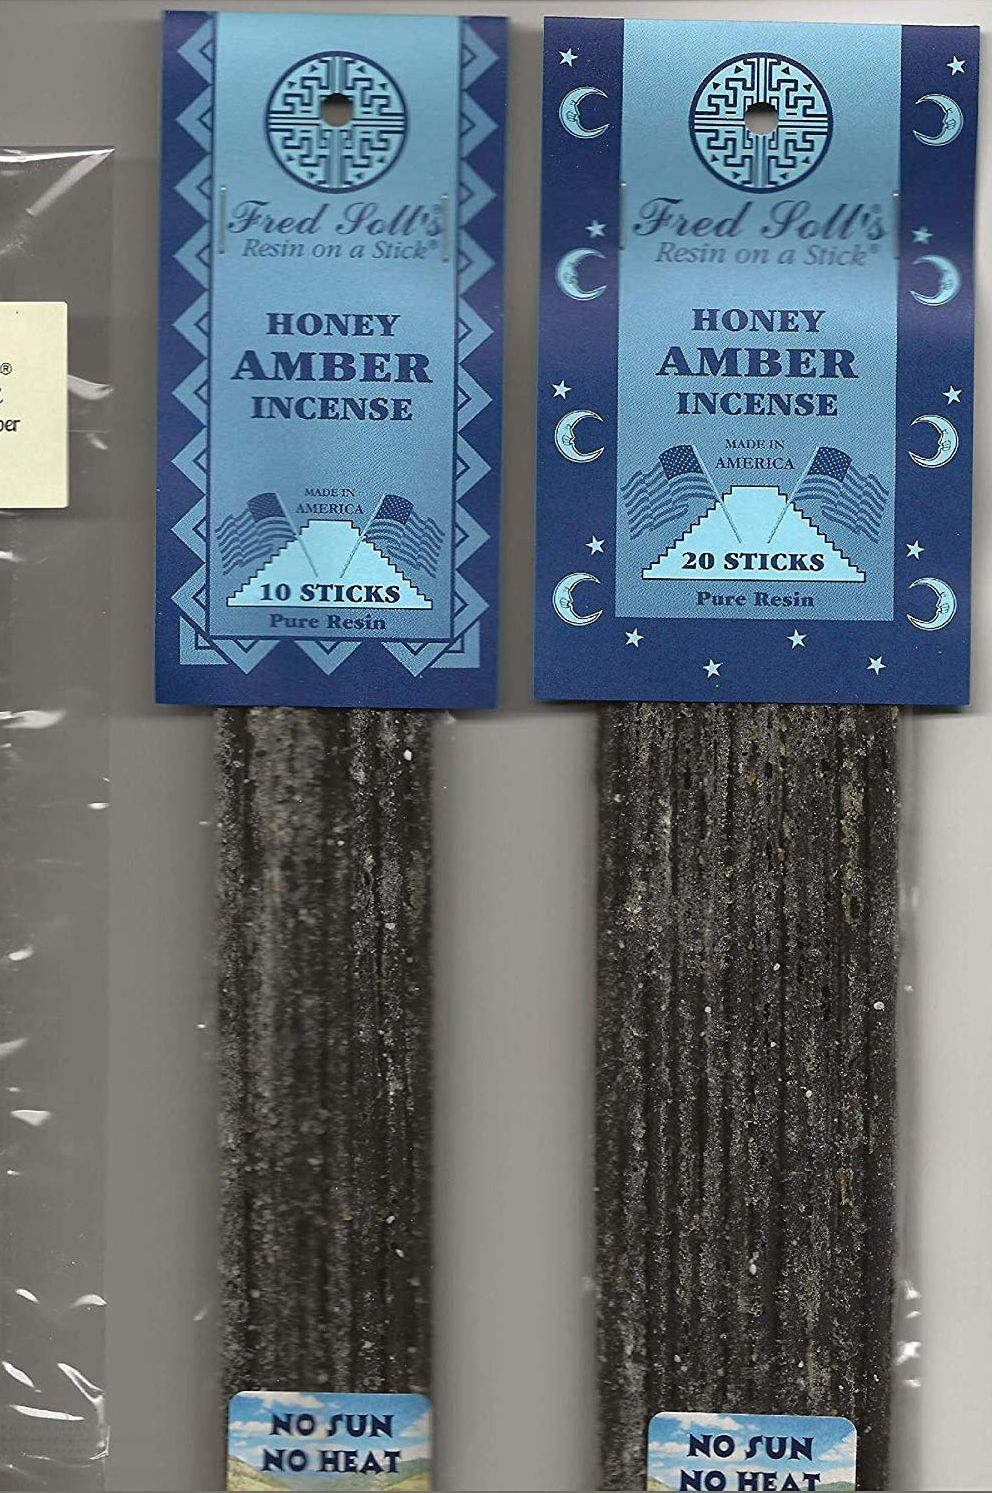 Fred Soll Incense Honey Amber